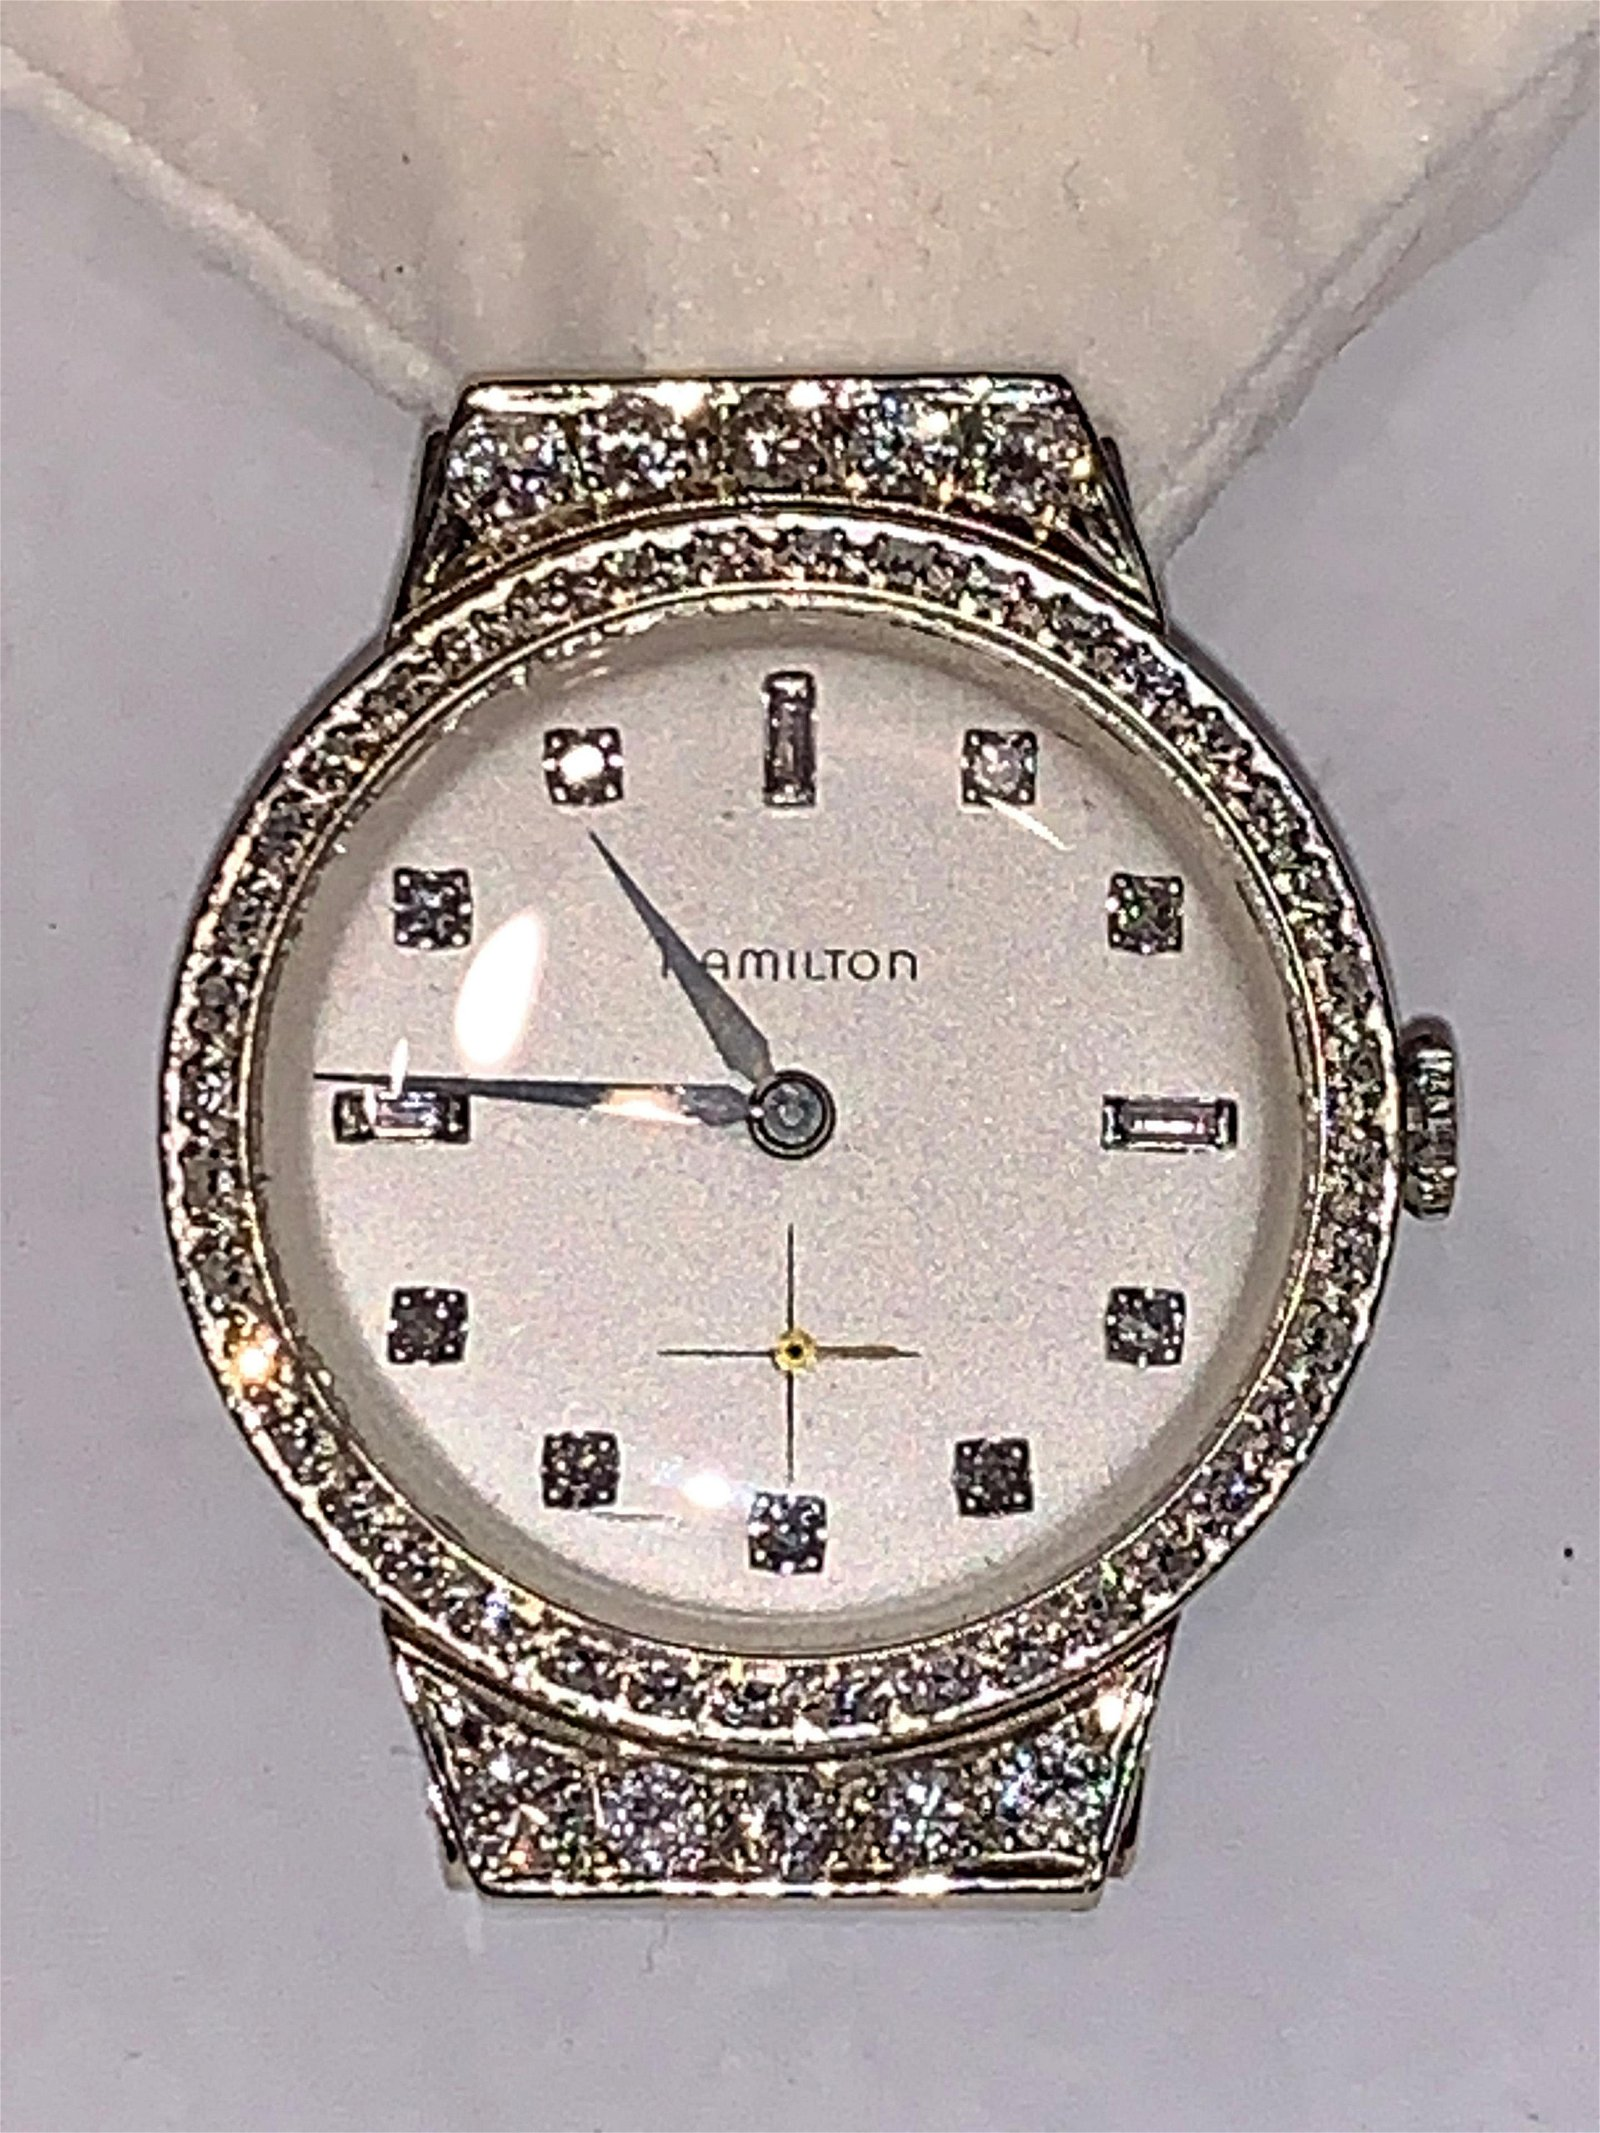 HAMILTON 14K GOLD 2.0 TCW DIAMONDS MENS WATCH